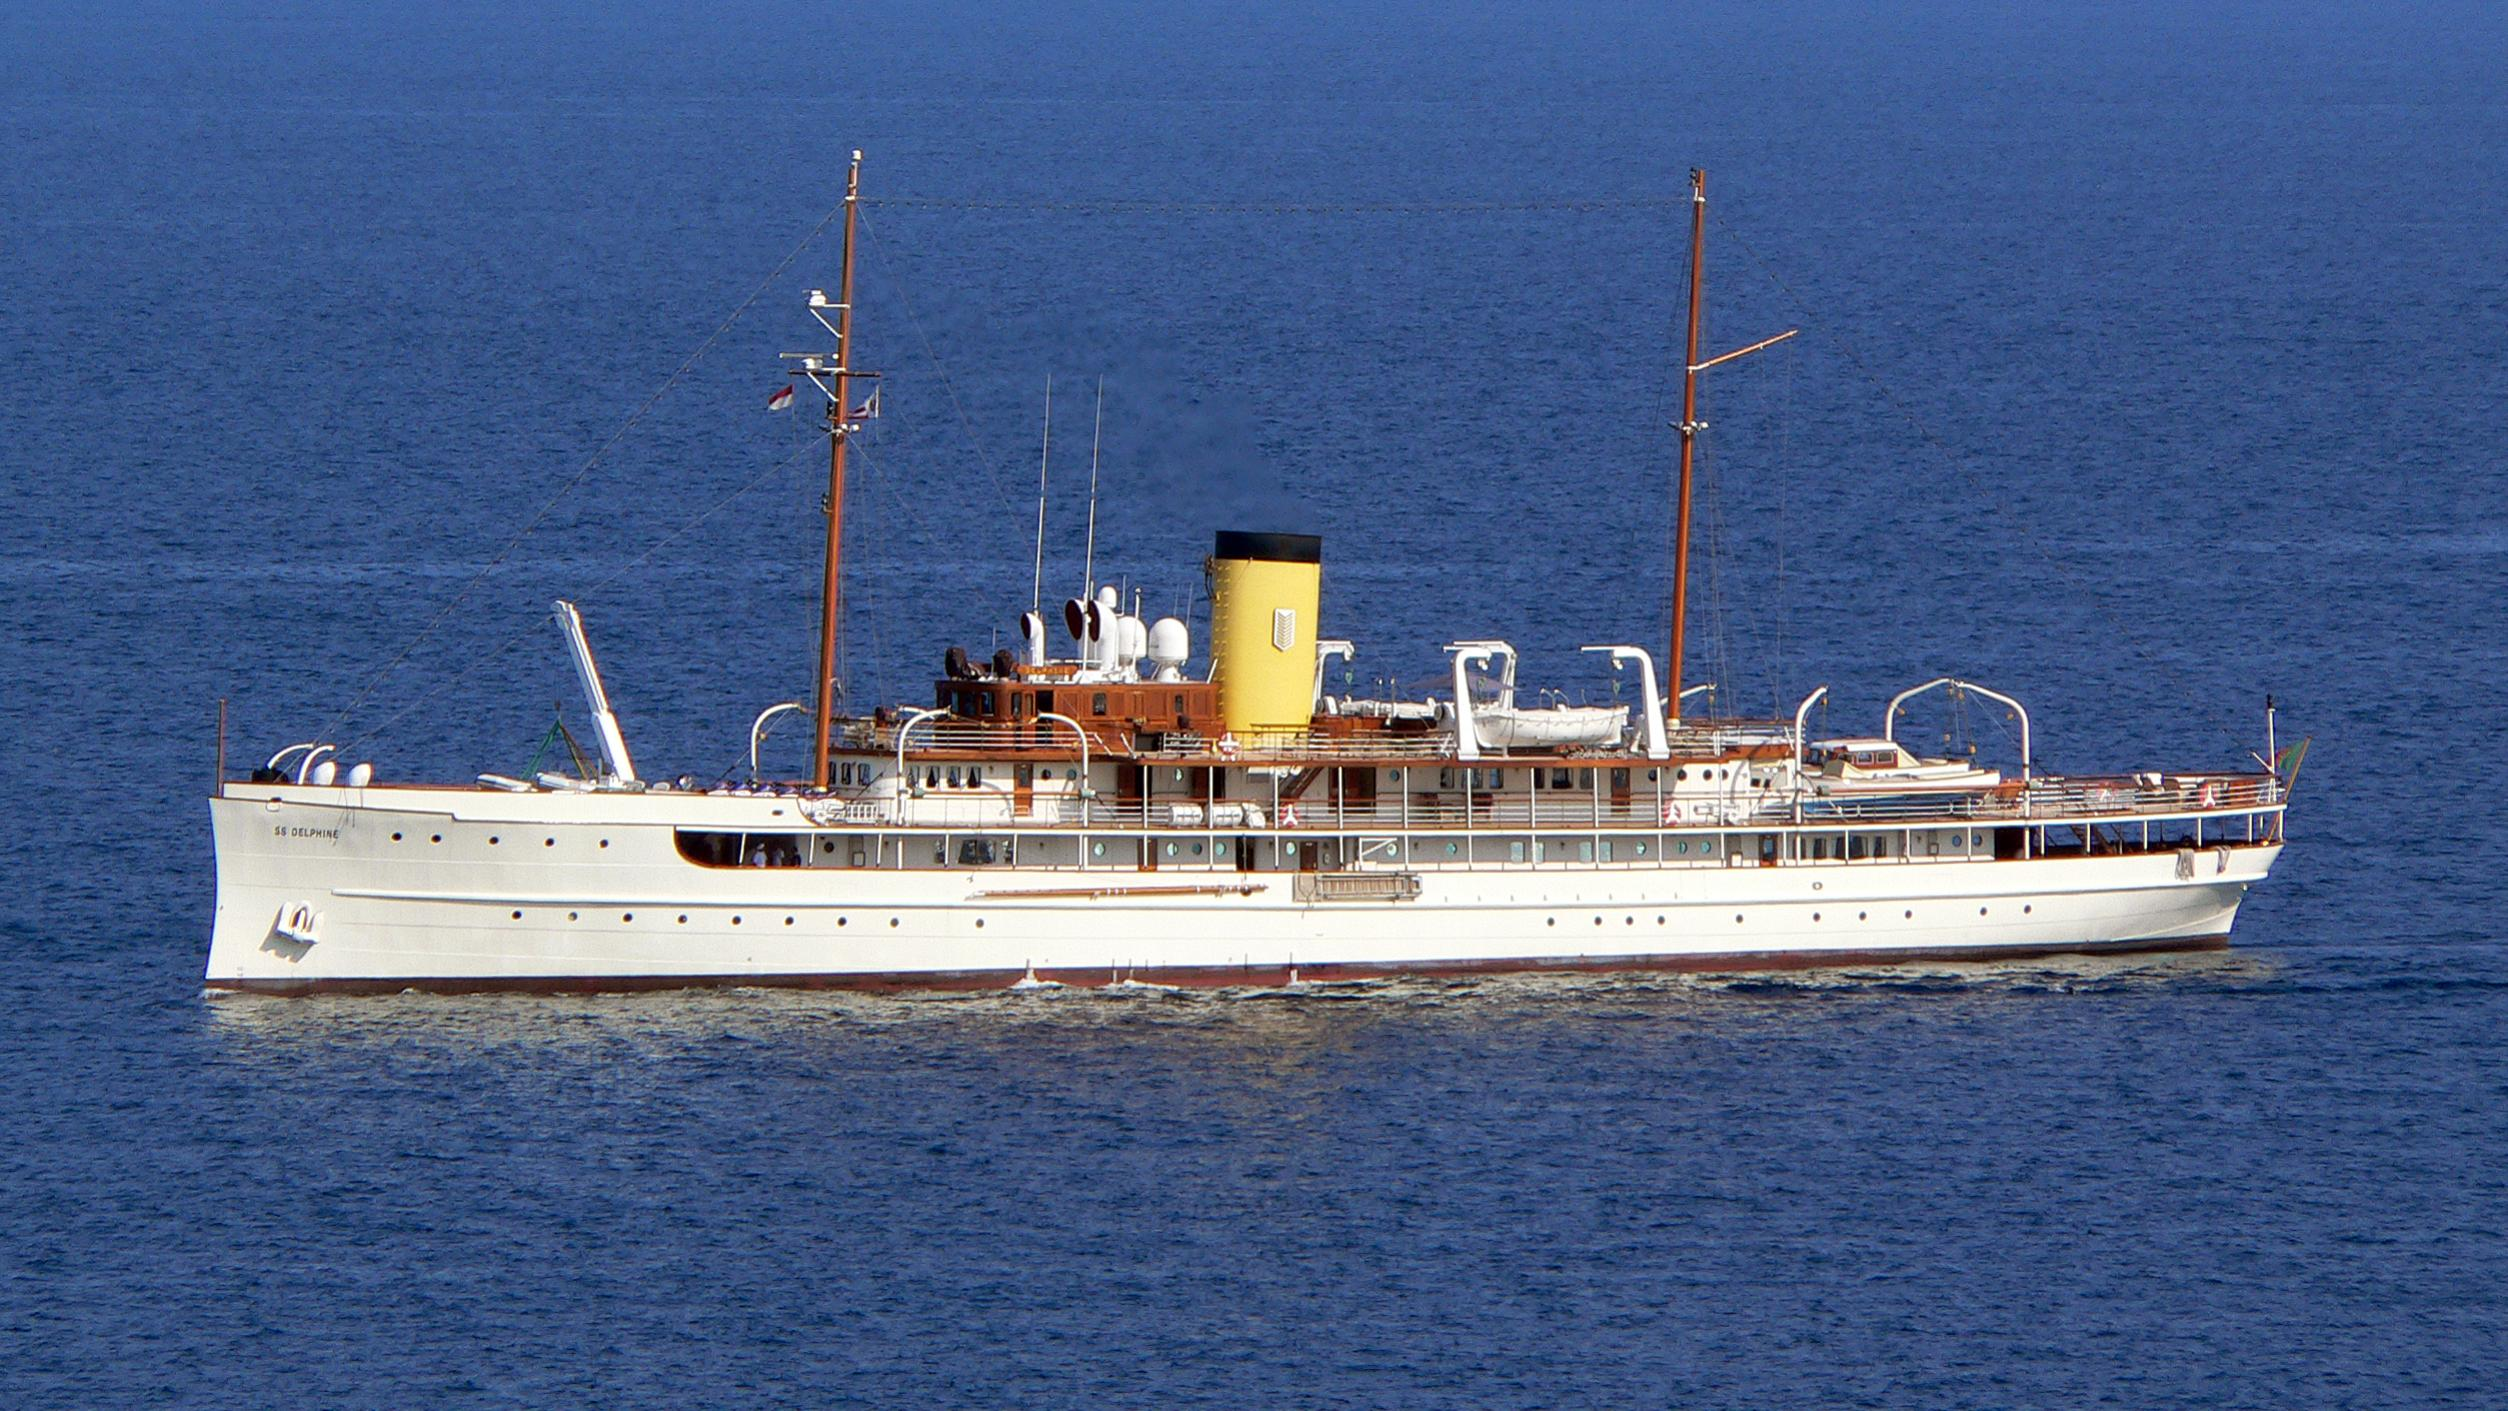 ss-delphine-yacht-exterior